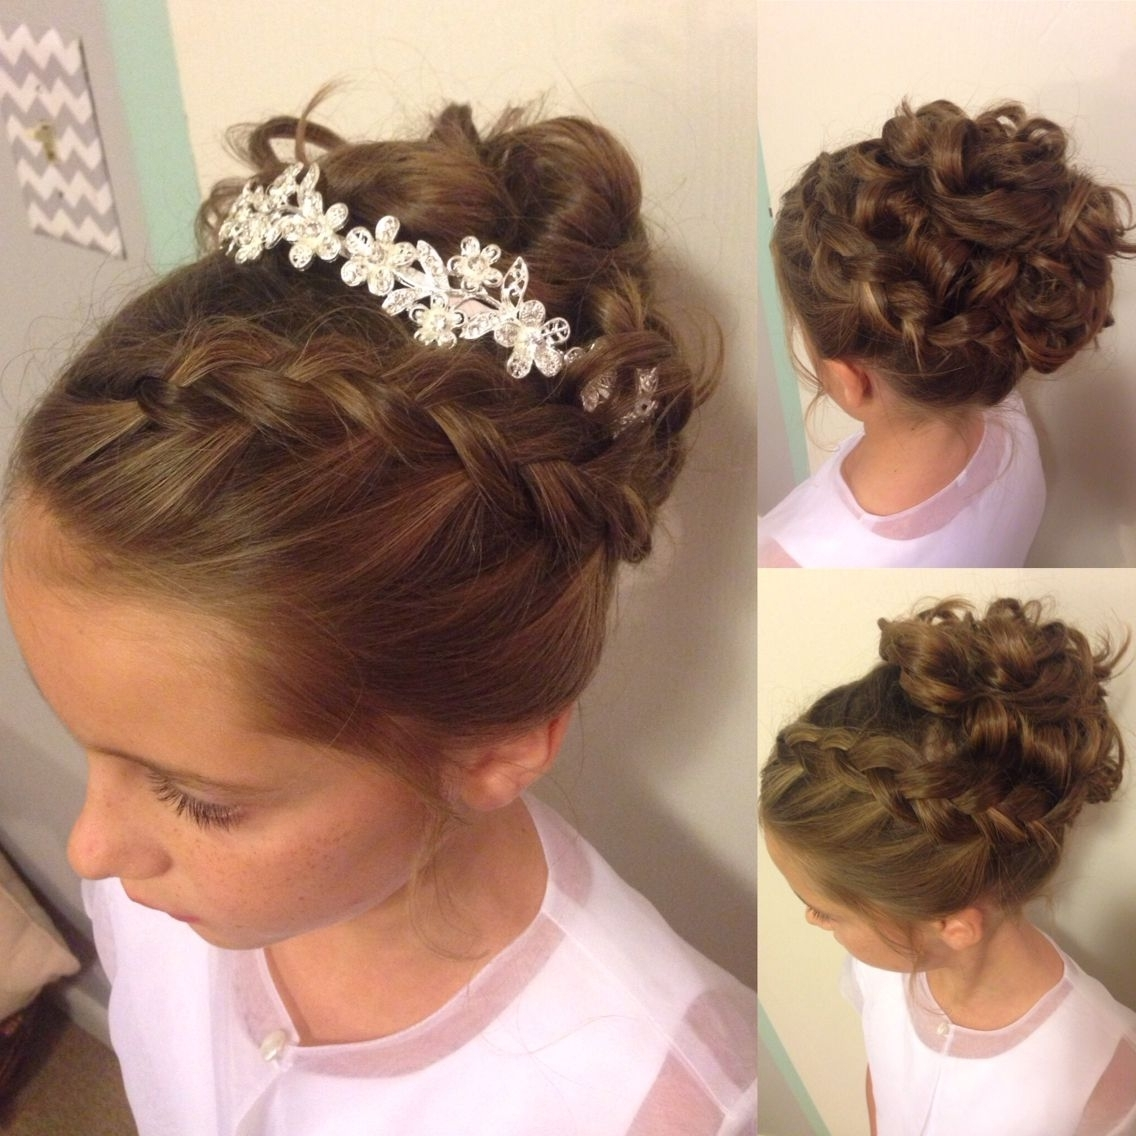 Pinmary Rose On My Work | Pinterest | Updo, Weddings And Girls With Regard To Children's Updo Hairstyles (View 10 of 15)